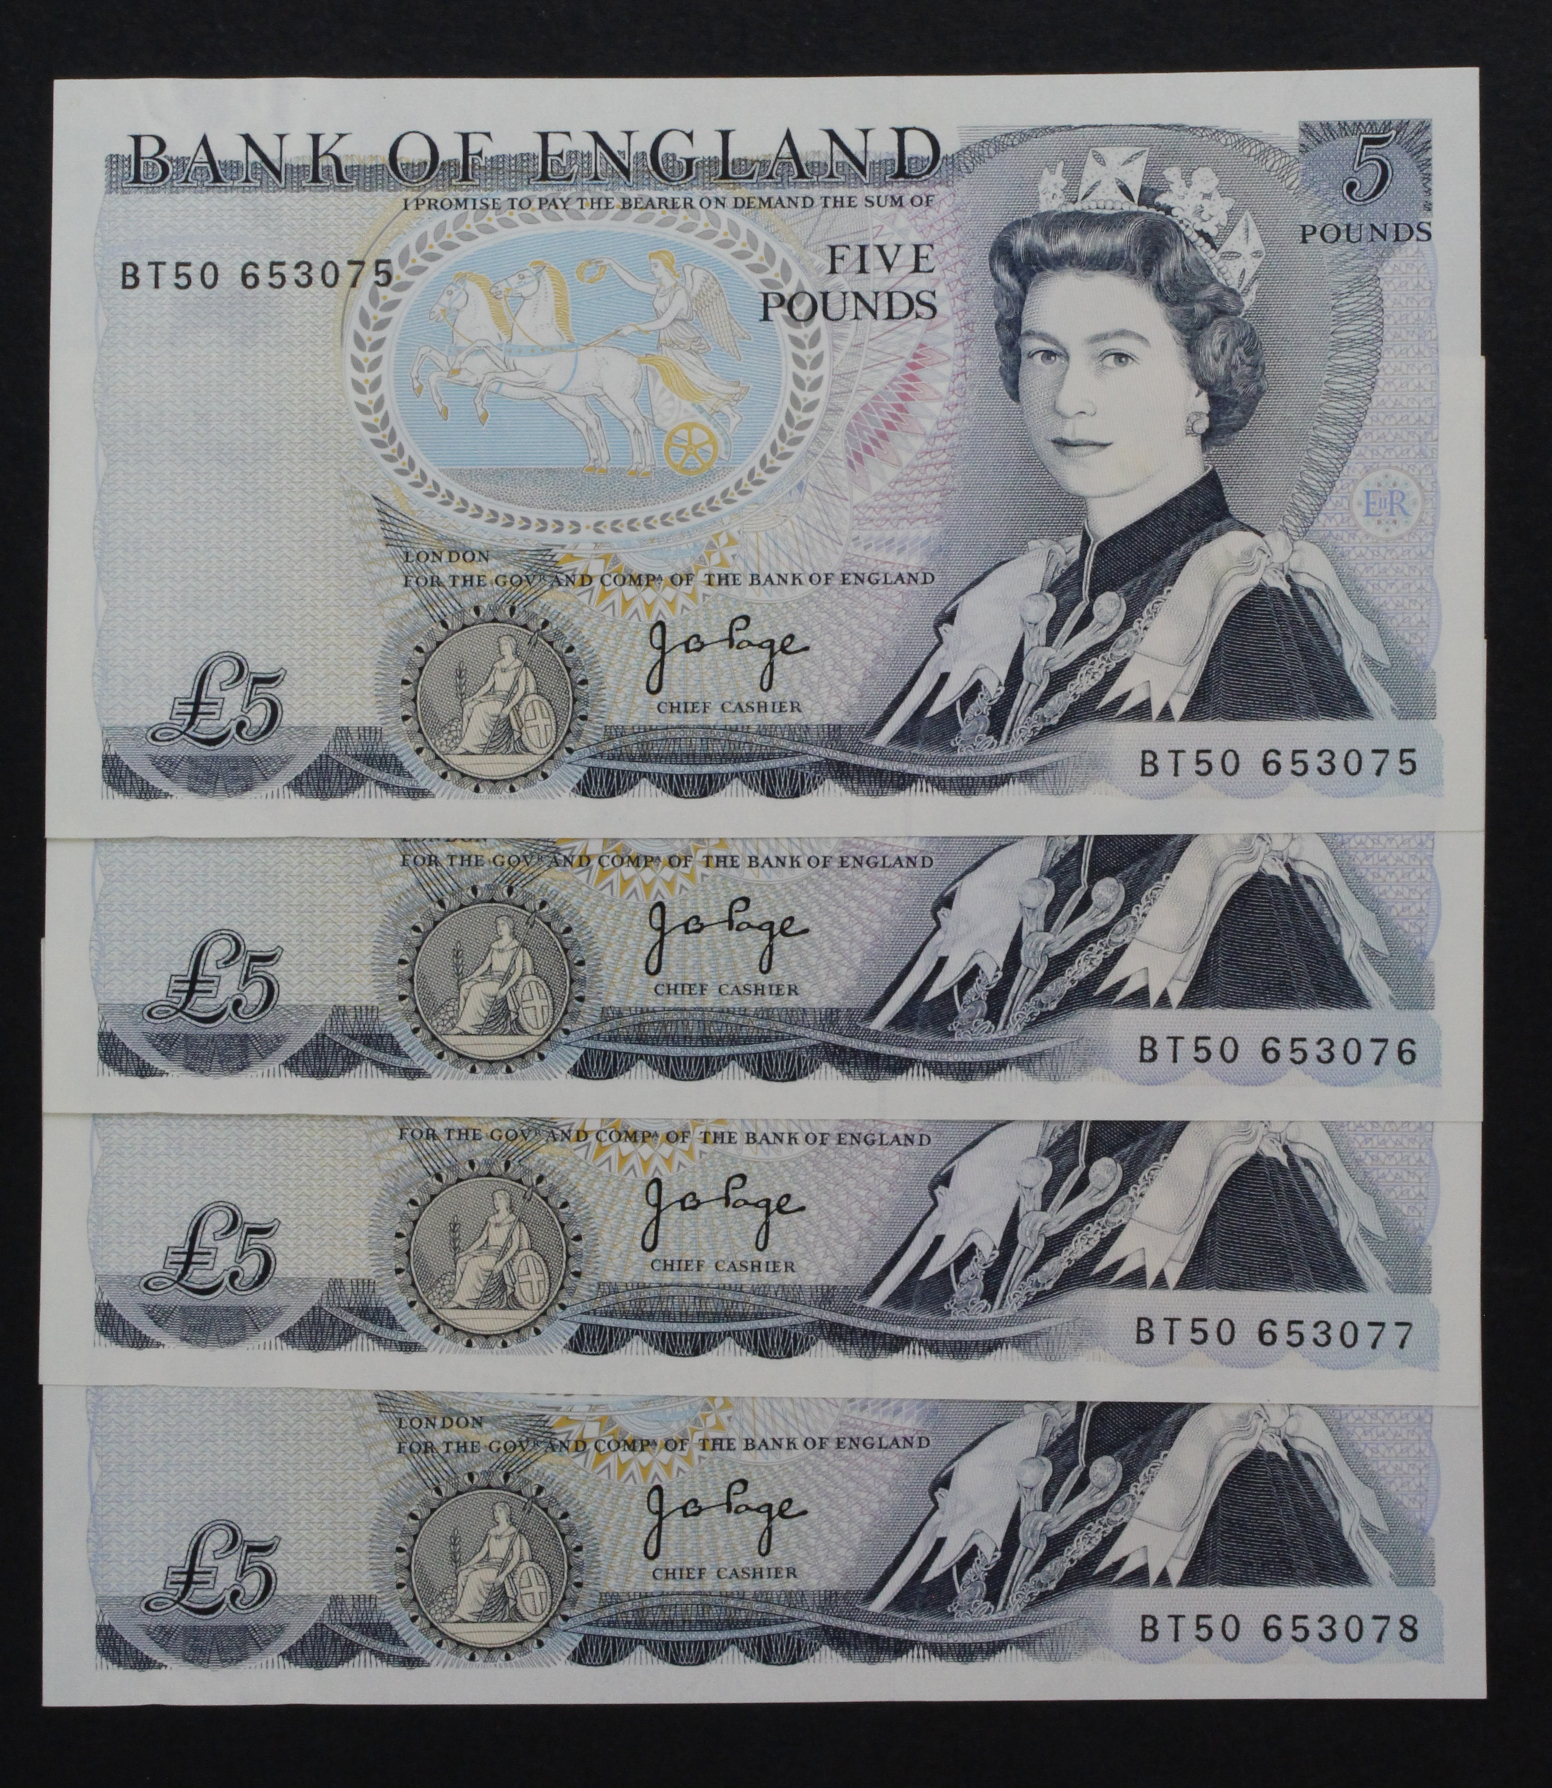 Page 5 Pounds (4) issued 1973, a consecutively numbered run, serial BT50 653075 - BT50 653078 (B336,